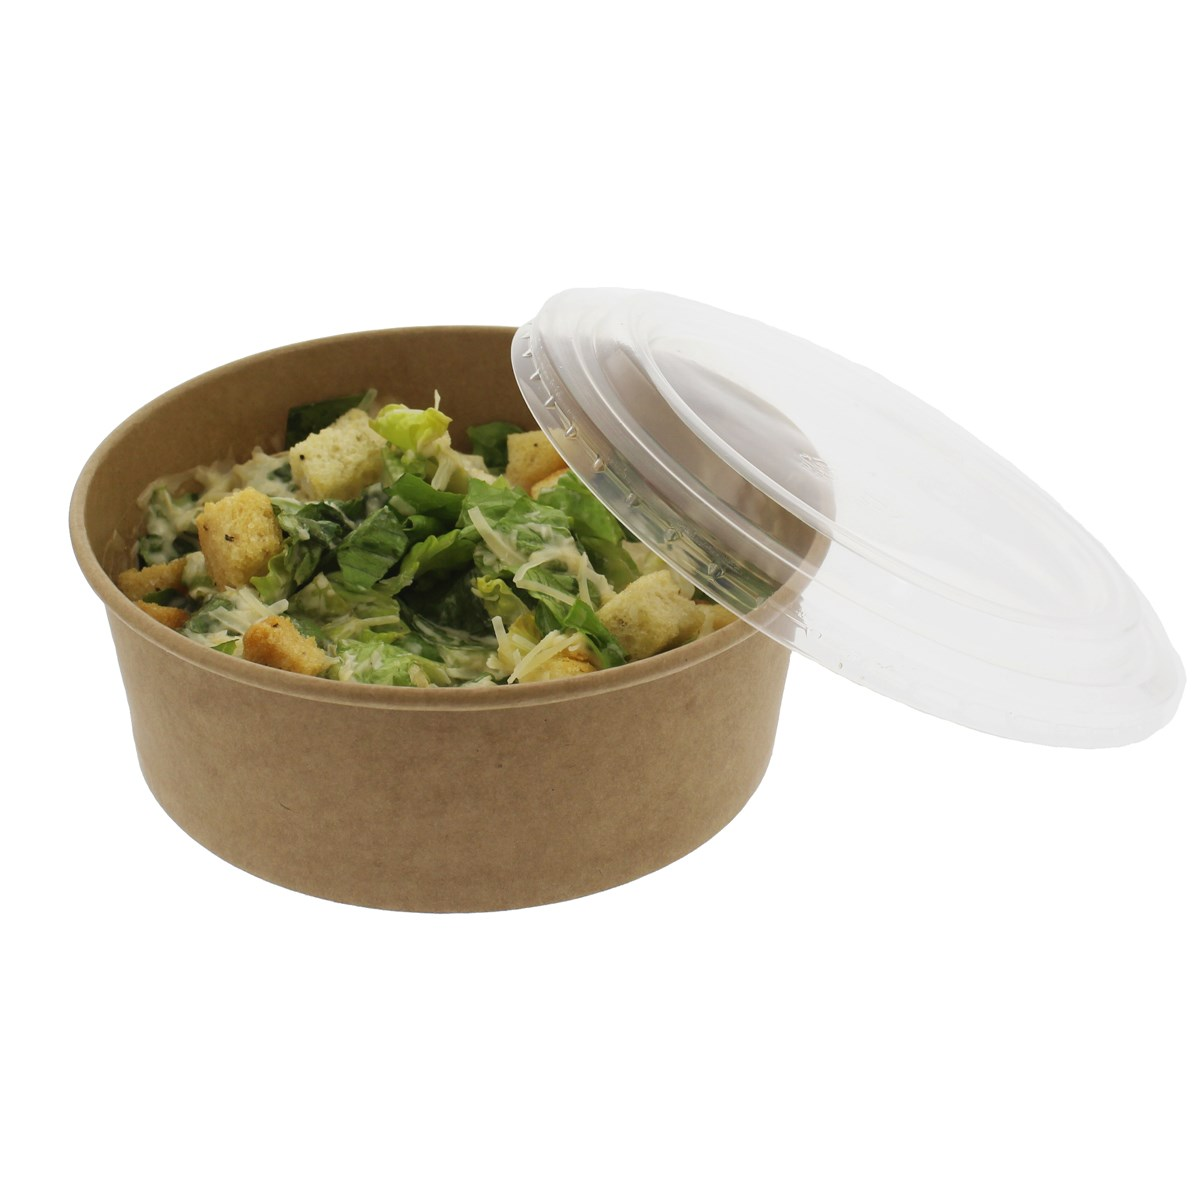 Salad Bowl Earth Friendly - 1000ml - 45 Per Pack